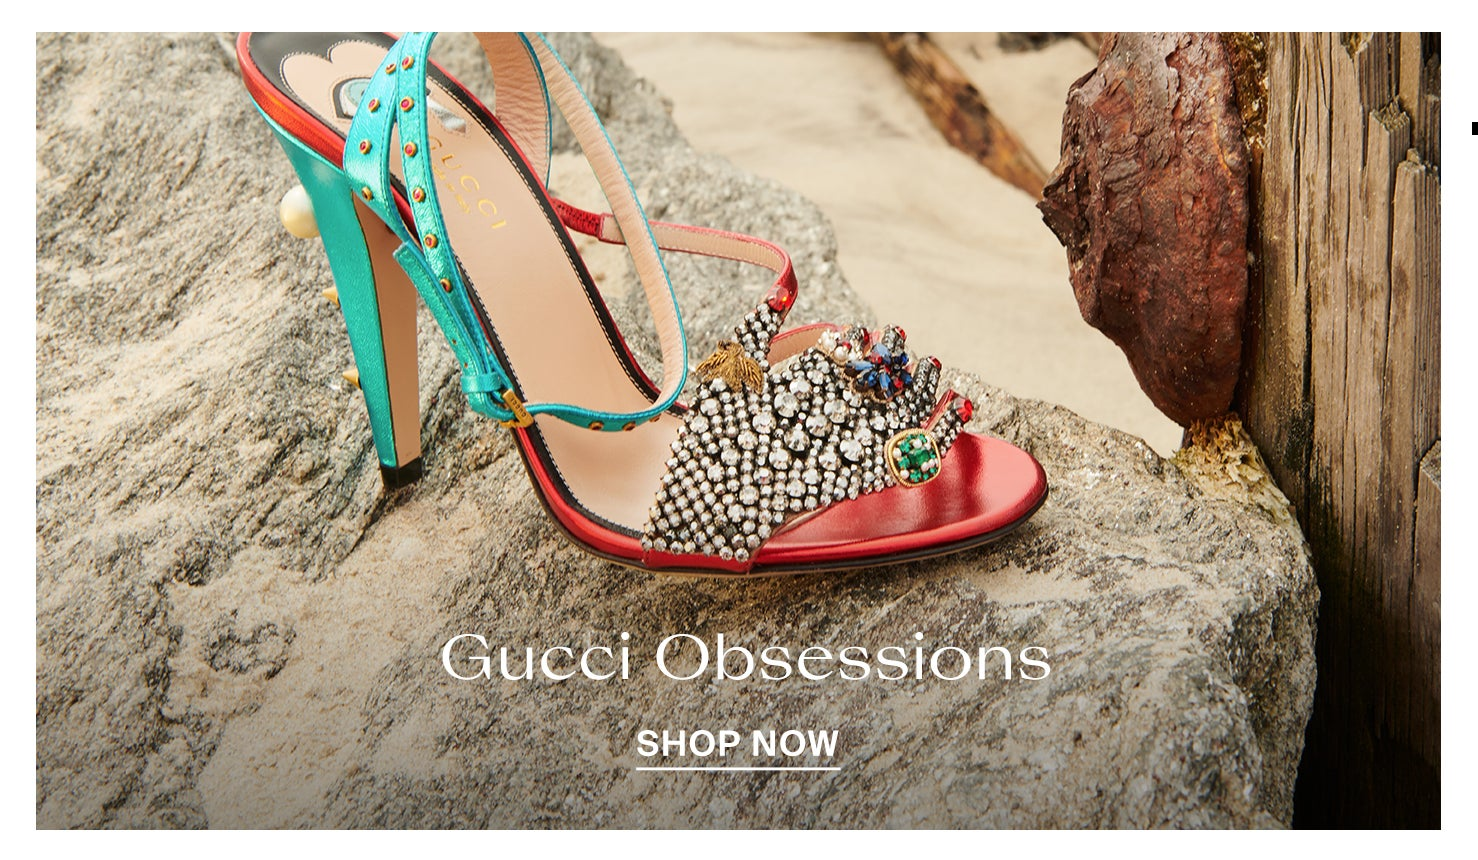 c7ec758c64 Luxury consignment sales. Shop for pre-owned designer handbags, shoes,  jewelry and more   The RealReal